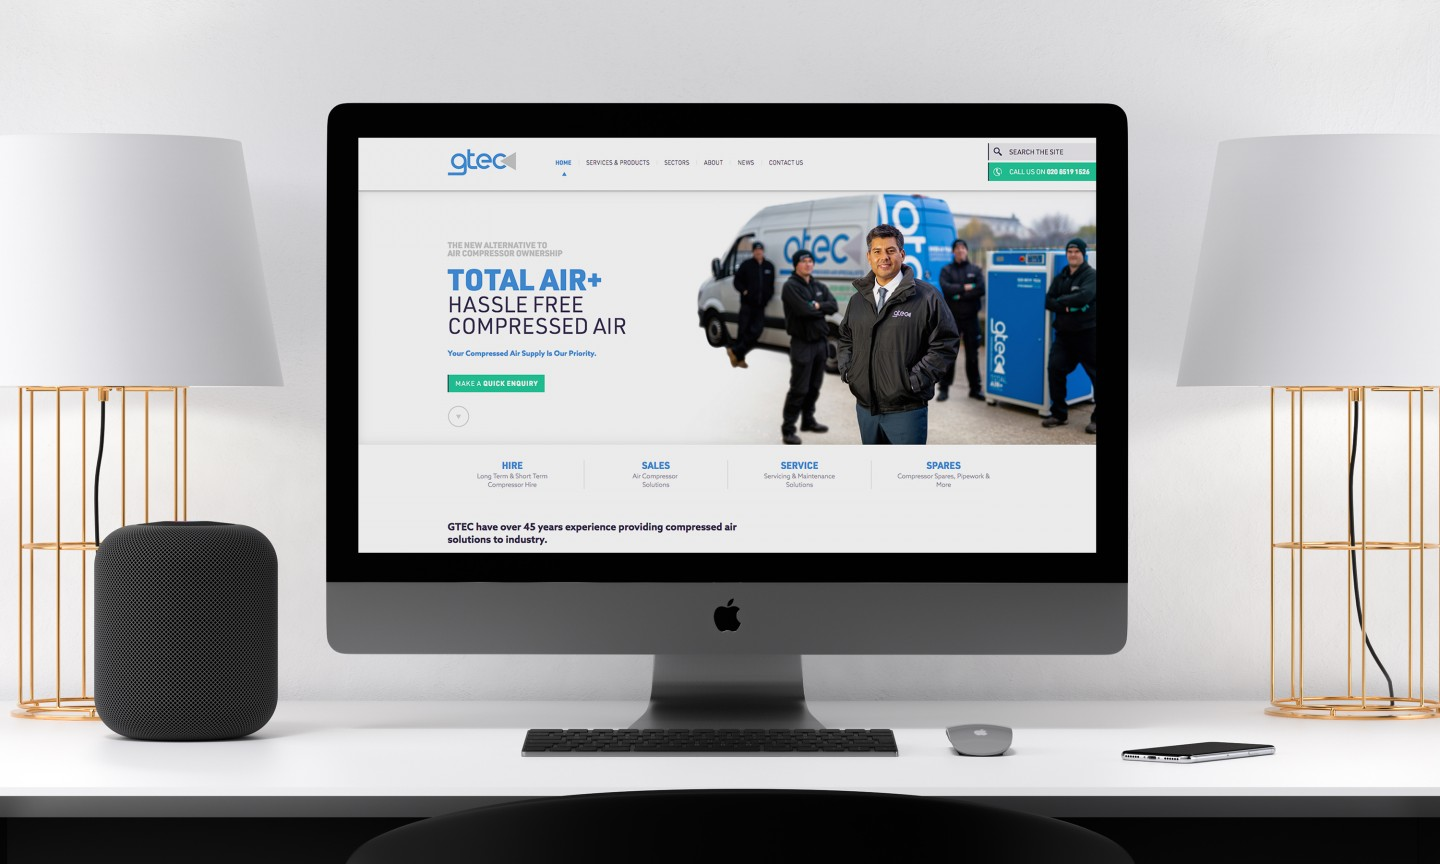 GTEC website design - home page